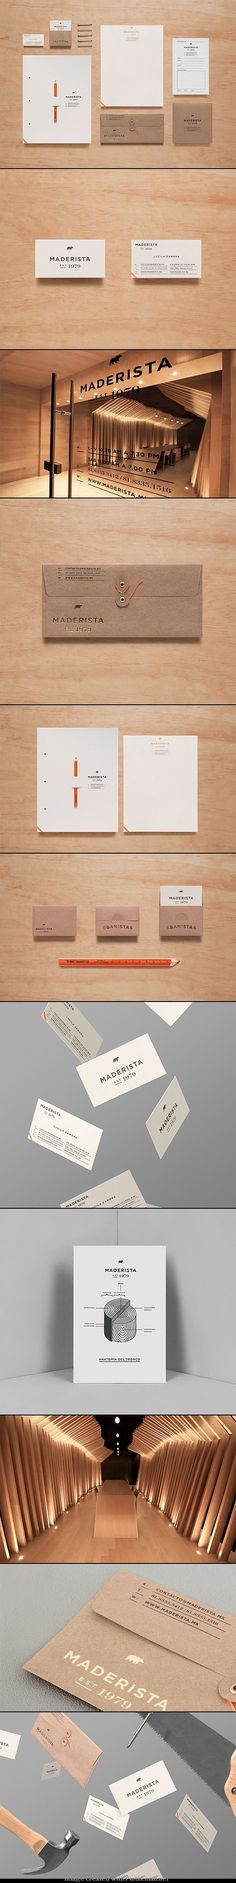 """Note: The outstanding photography of the branding items outshines the actual design of the brand/CI. """"Madersita Identity"""". If you like UX, design, or design thinking, check out theuxblog.com podcast https://itunes.apple.com/us/podcast/ux-blog-user-experience-design/id1127946001?mt=2"""